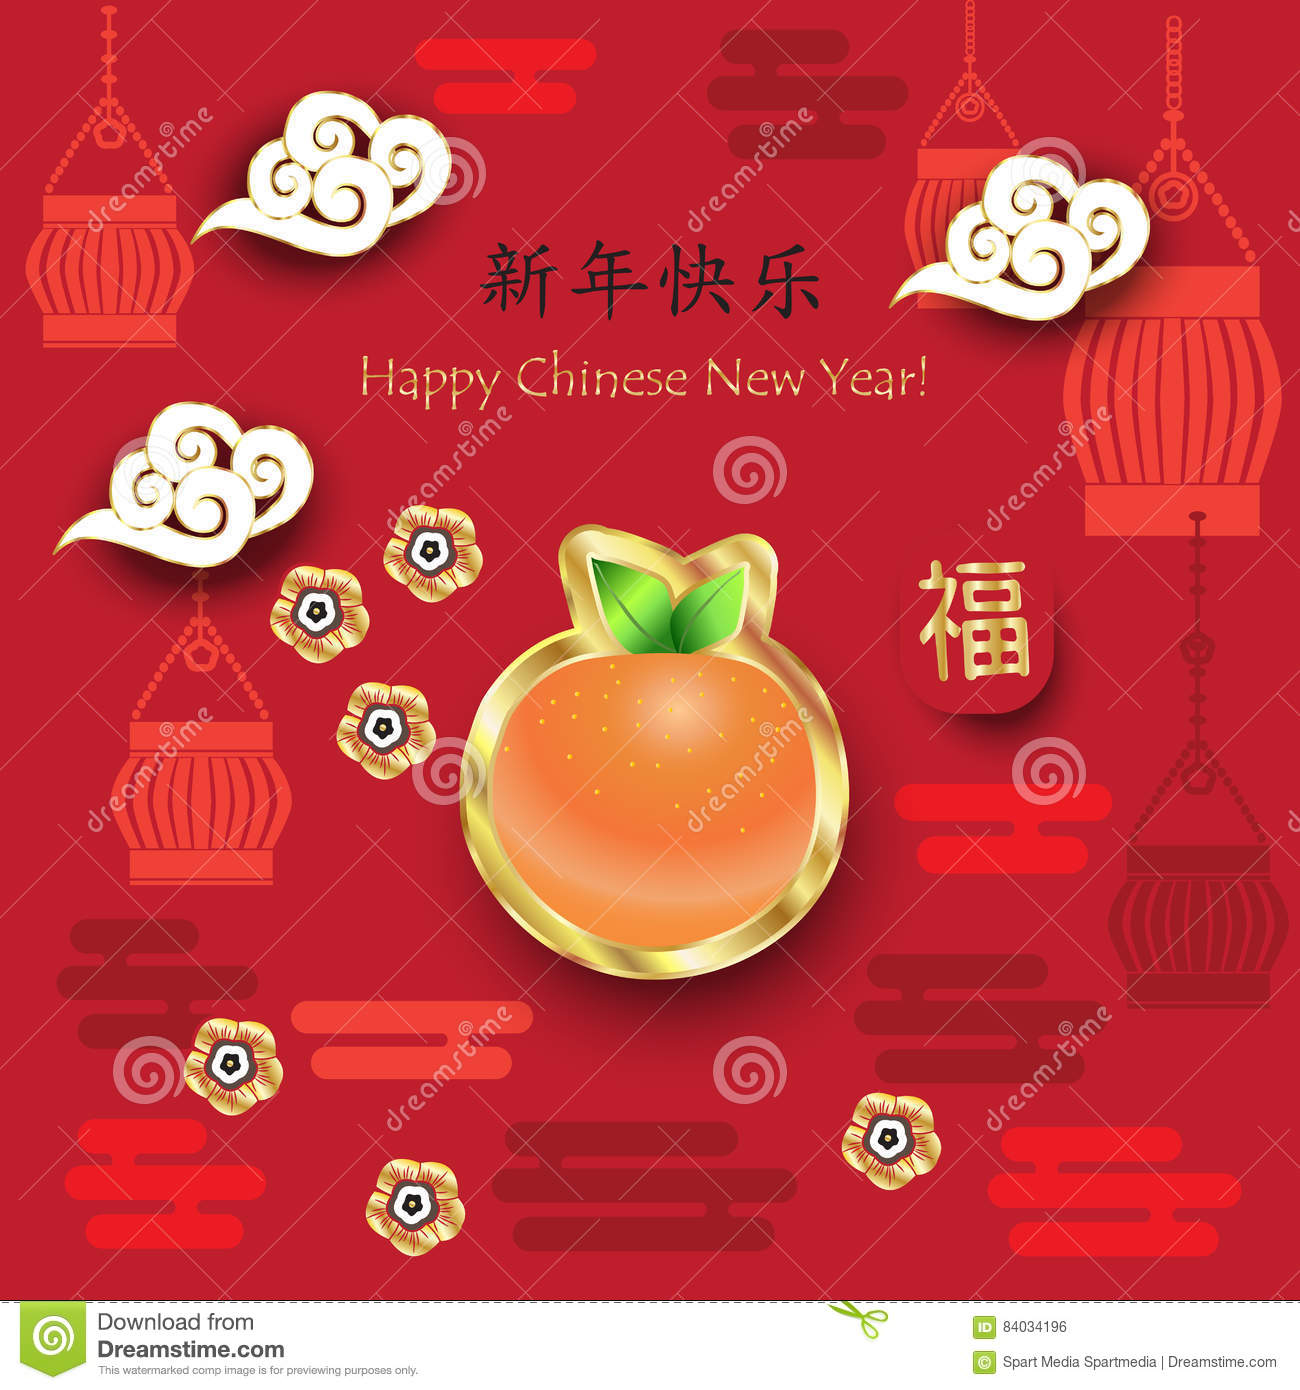 Chinese new year stock vector illustration of bird east 84034196 happy chinese new year greeting card with chinese traditional decorative elements ornament mandarin flowers lantern clouds fortune symbols m4hsunfo